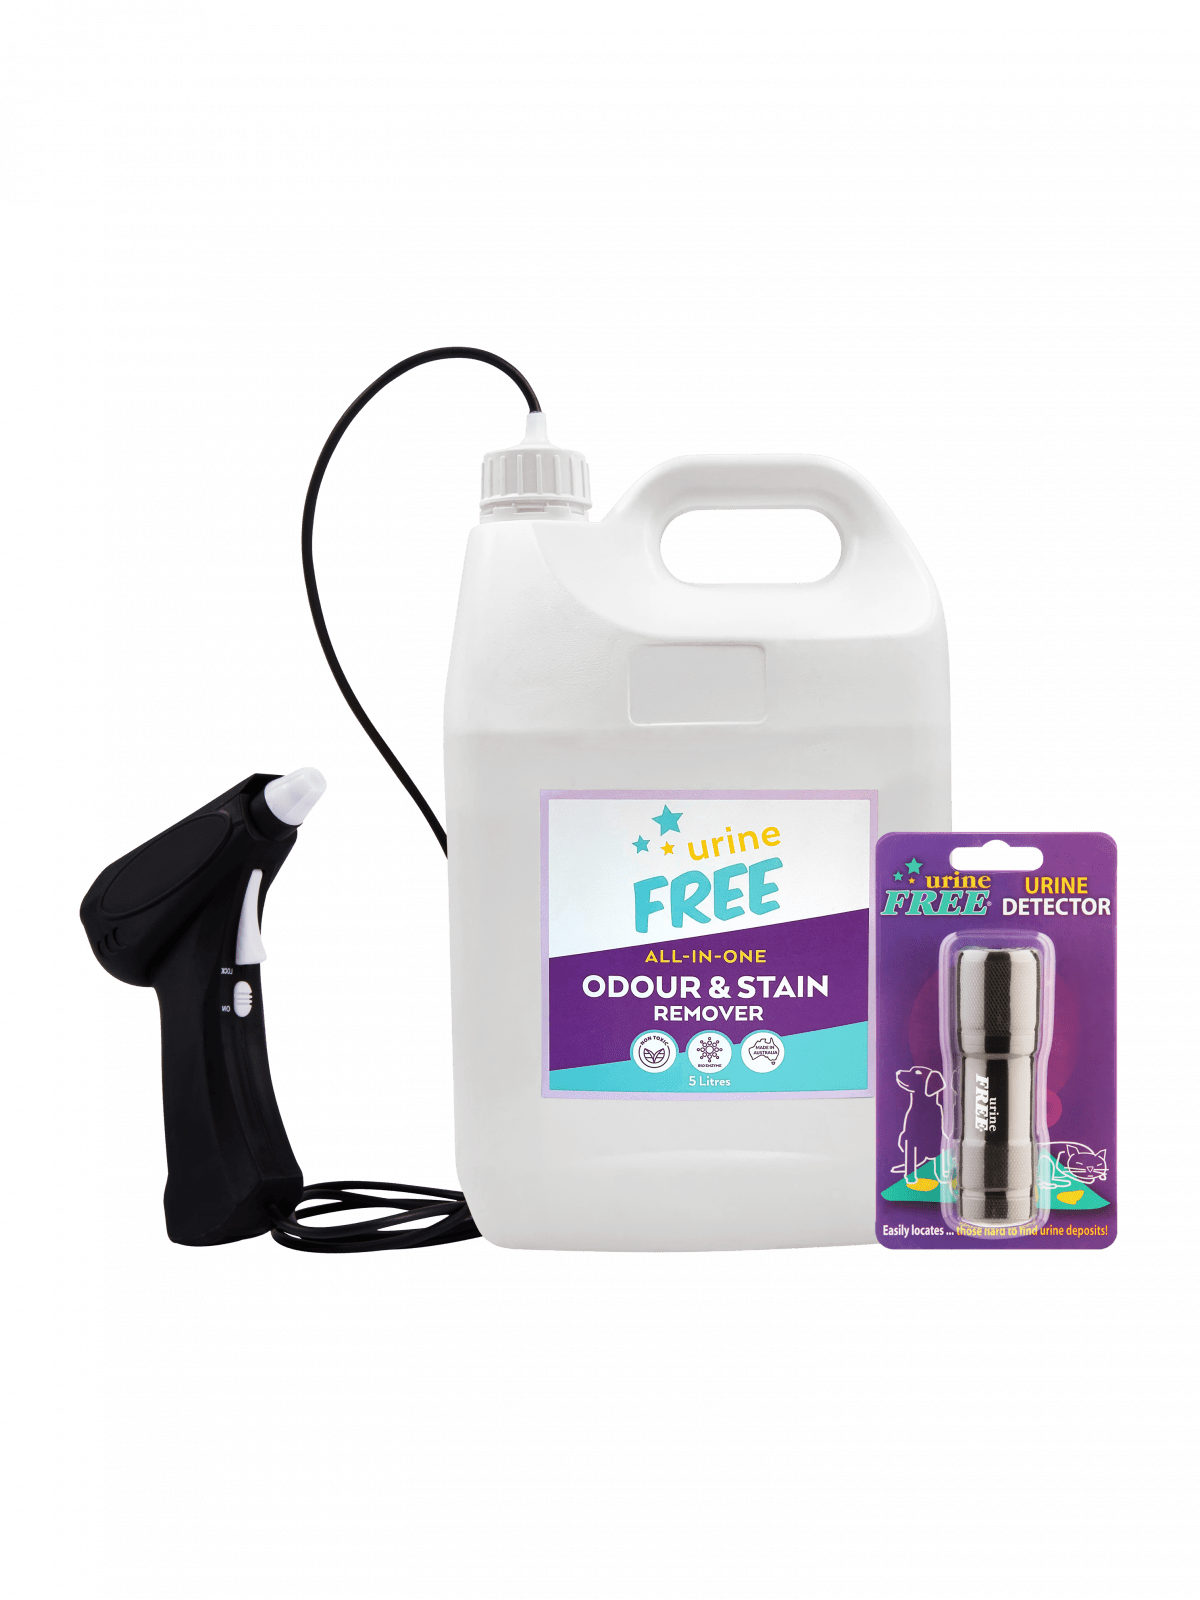 UrineFREE 5 Litre Container With Urine Detector _ Battery Sprayer